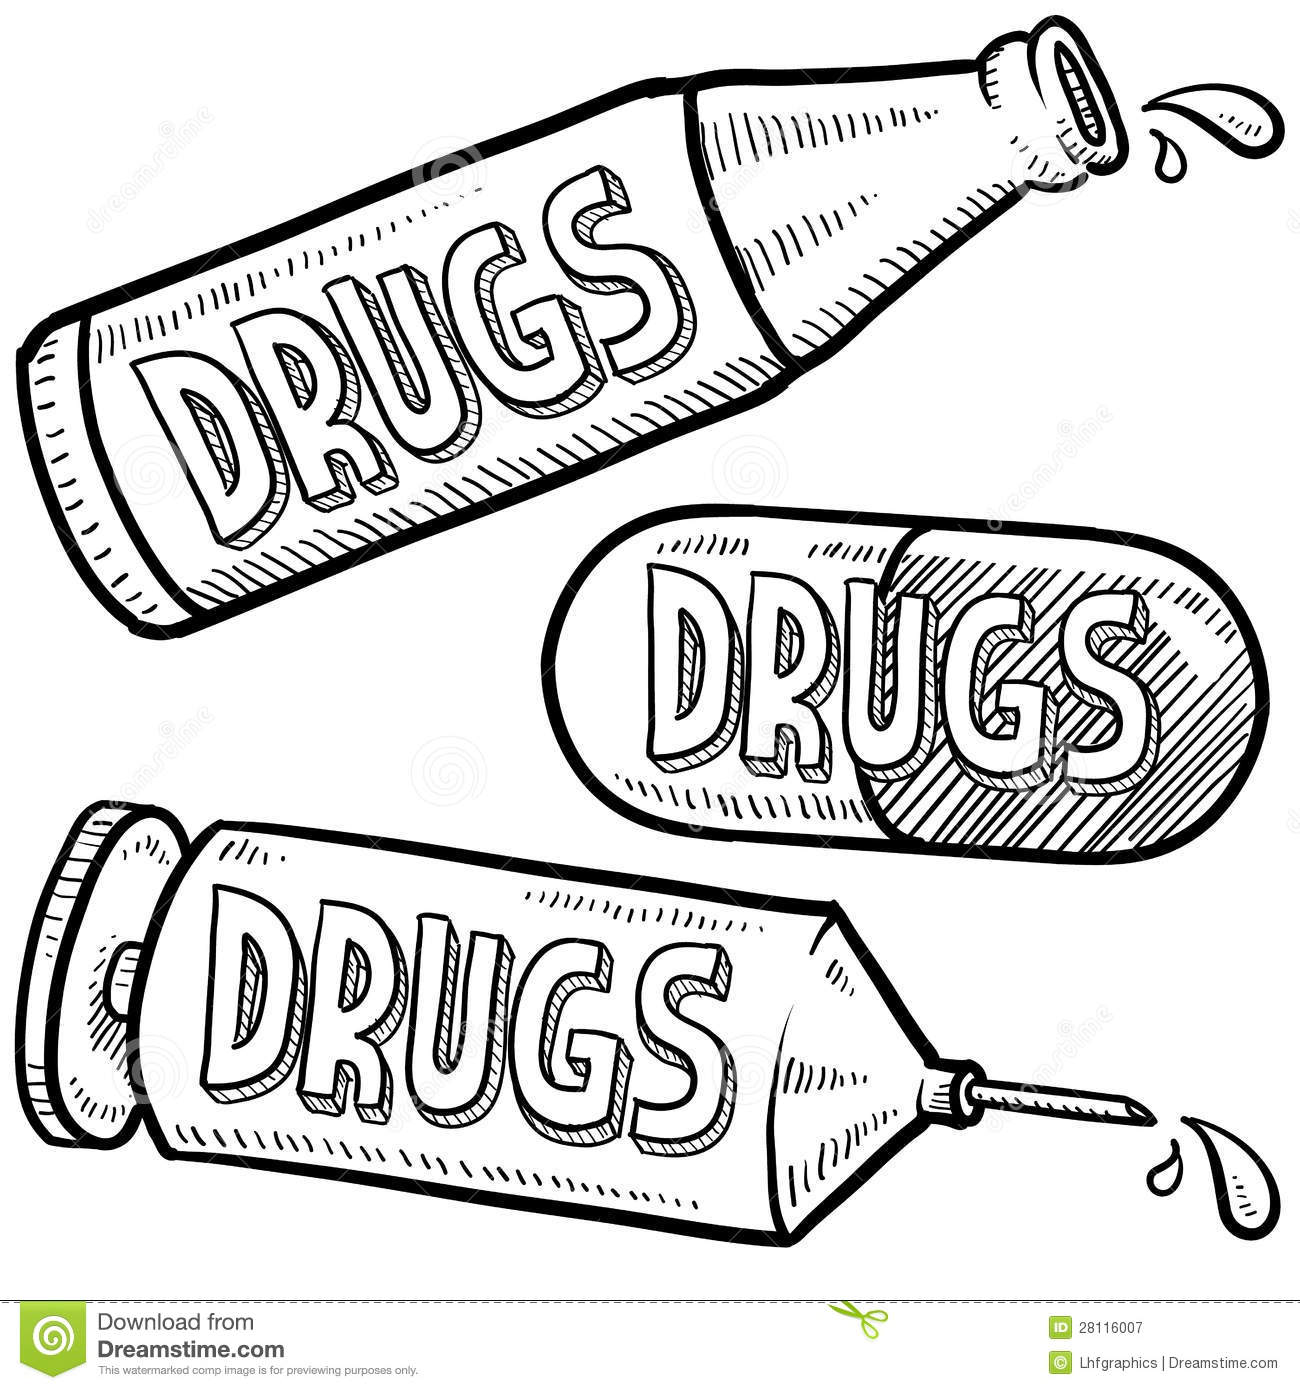 cocaine toucher coloring pages - photo#35